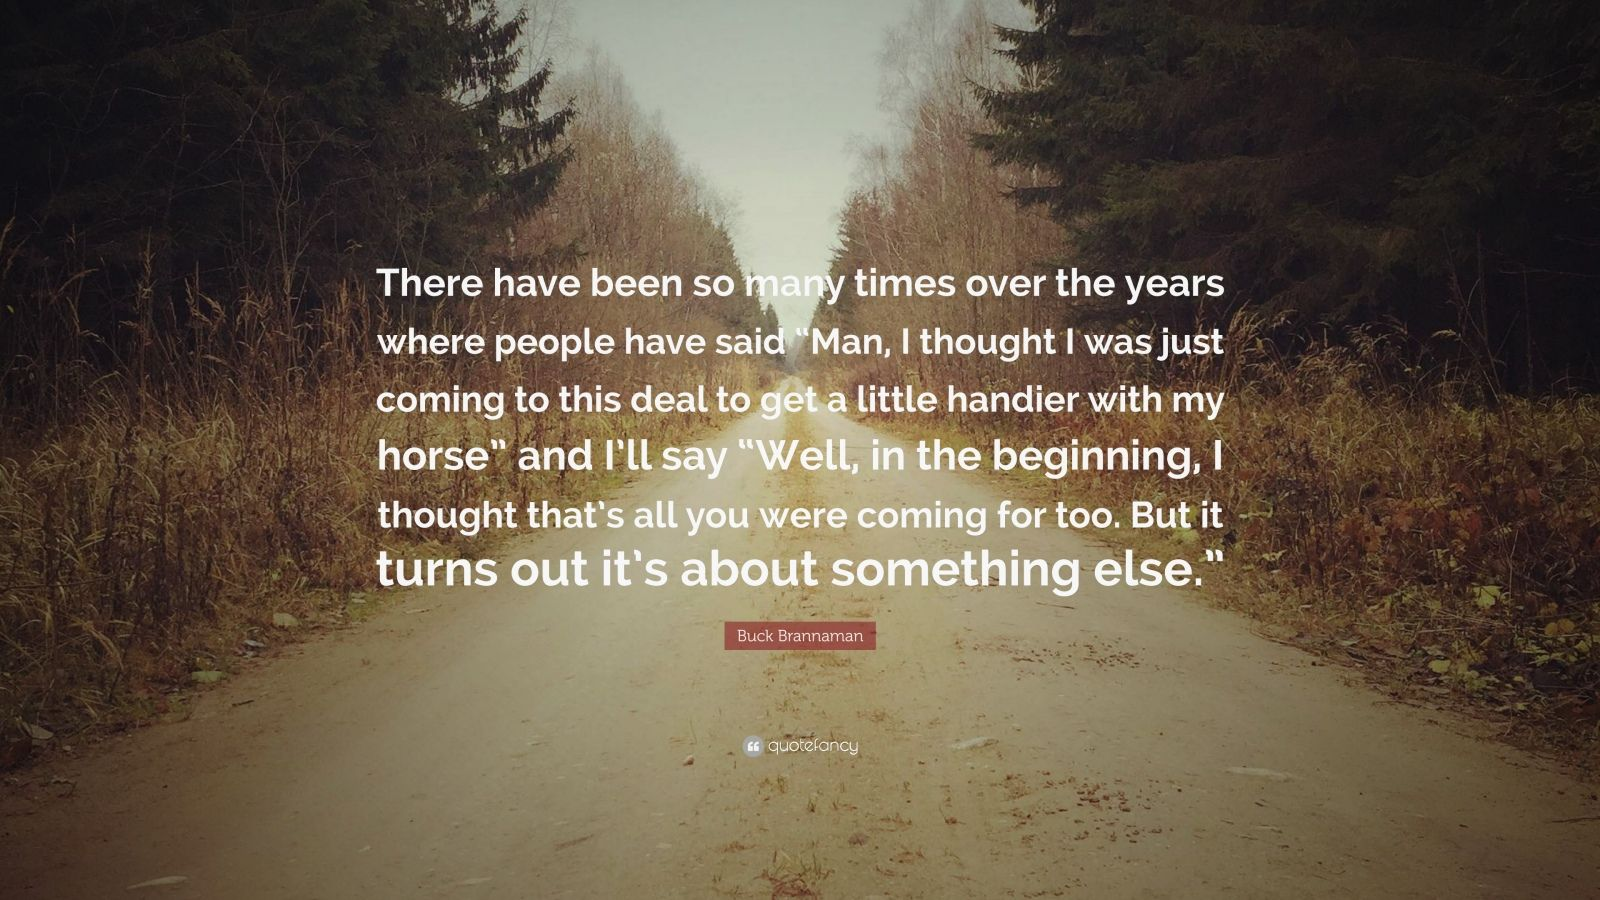 """Buck Brannaman Quote: """"There have been so many times over the years where people have said """"Man, I thought I was just coming to this deal to get a little handier with my horse"""" and I'll say """"Well, in the beginning, I thought that's all you were coming for too. But it turns out it's about something else."""""""""""